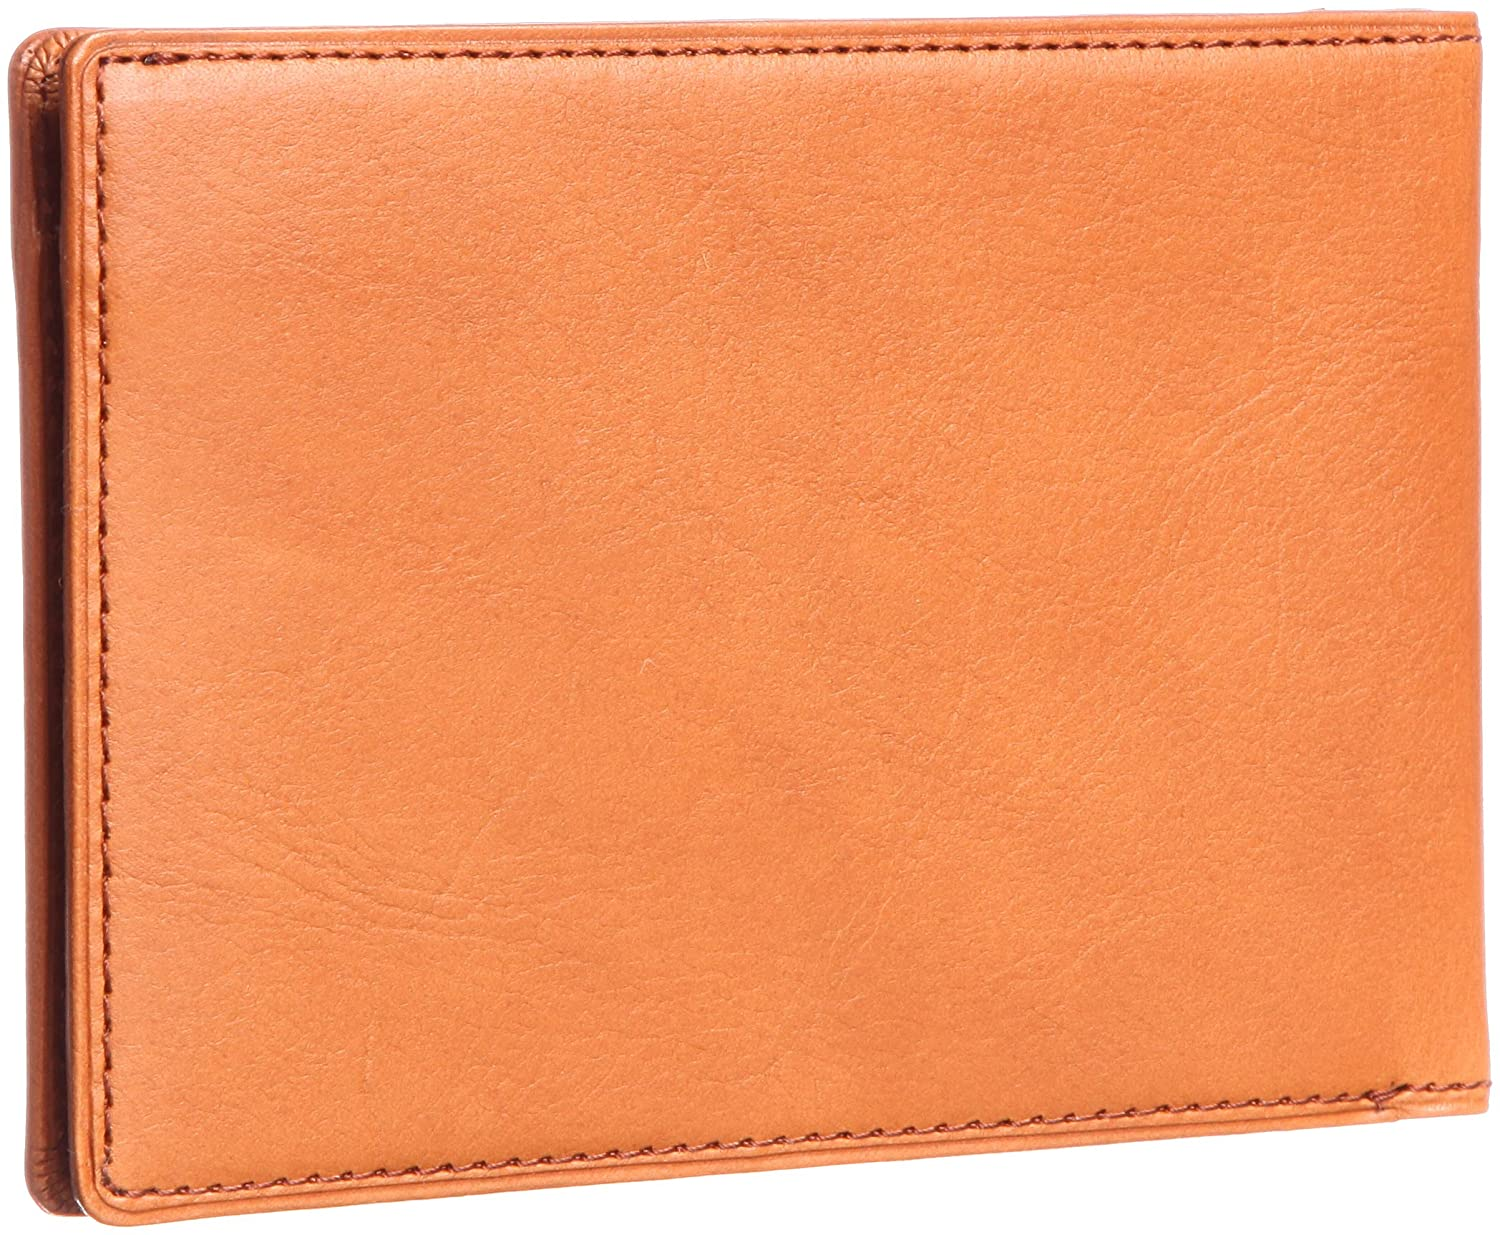 THINly Leather Bifold Wallet SLBS01 Camel